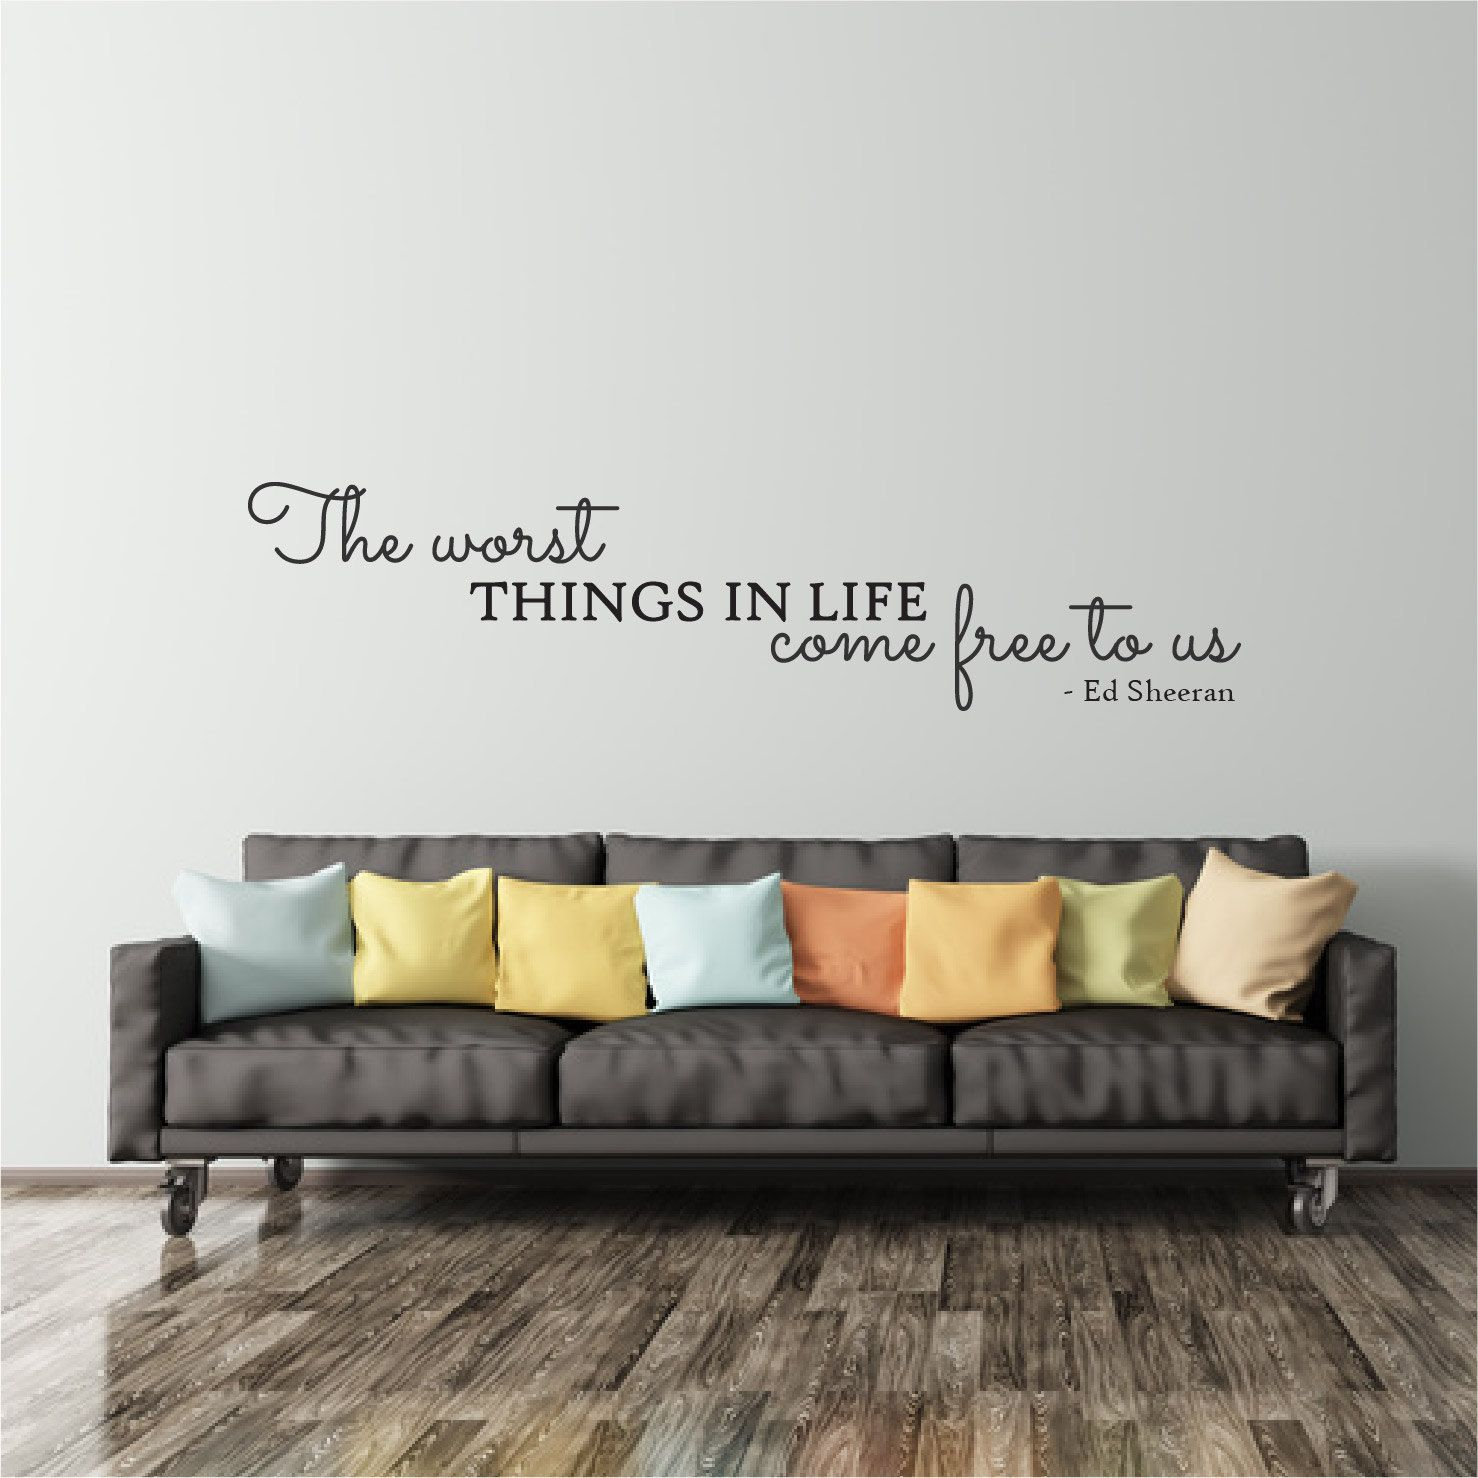 Ed Sheeran Wall Decal Quote Above Bed Decal Bedroom Wall Sticker ...